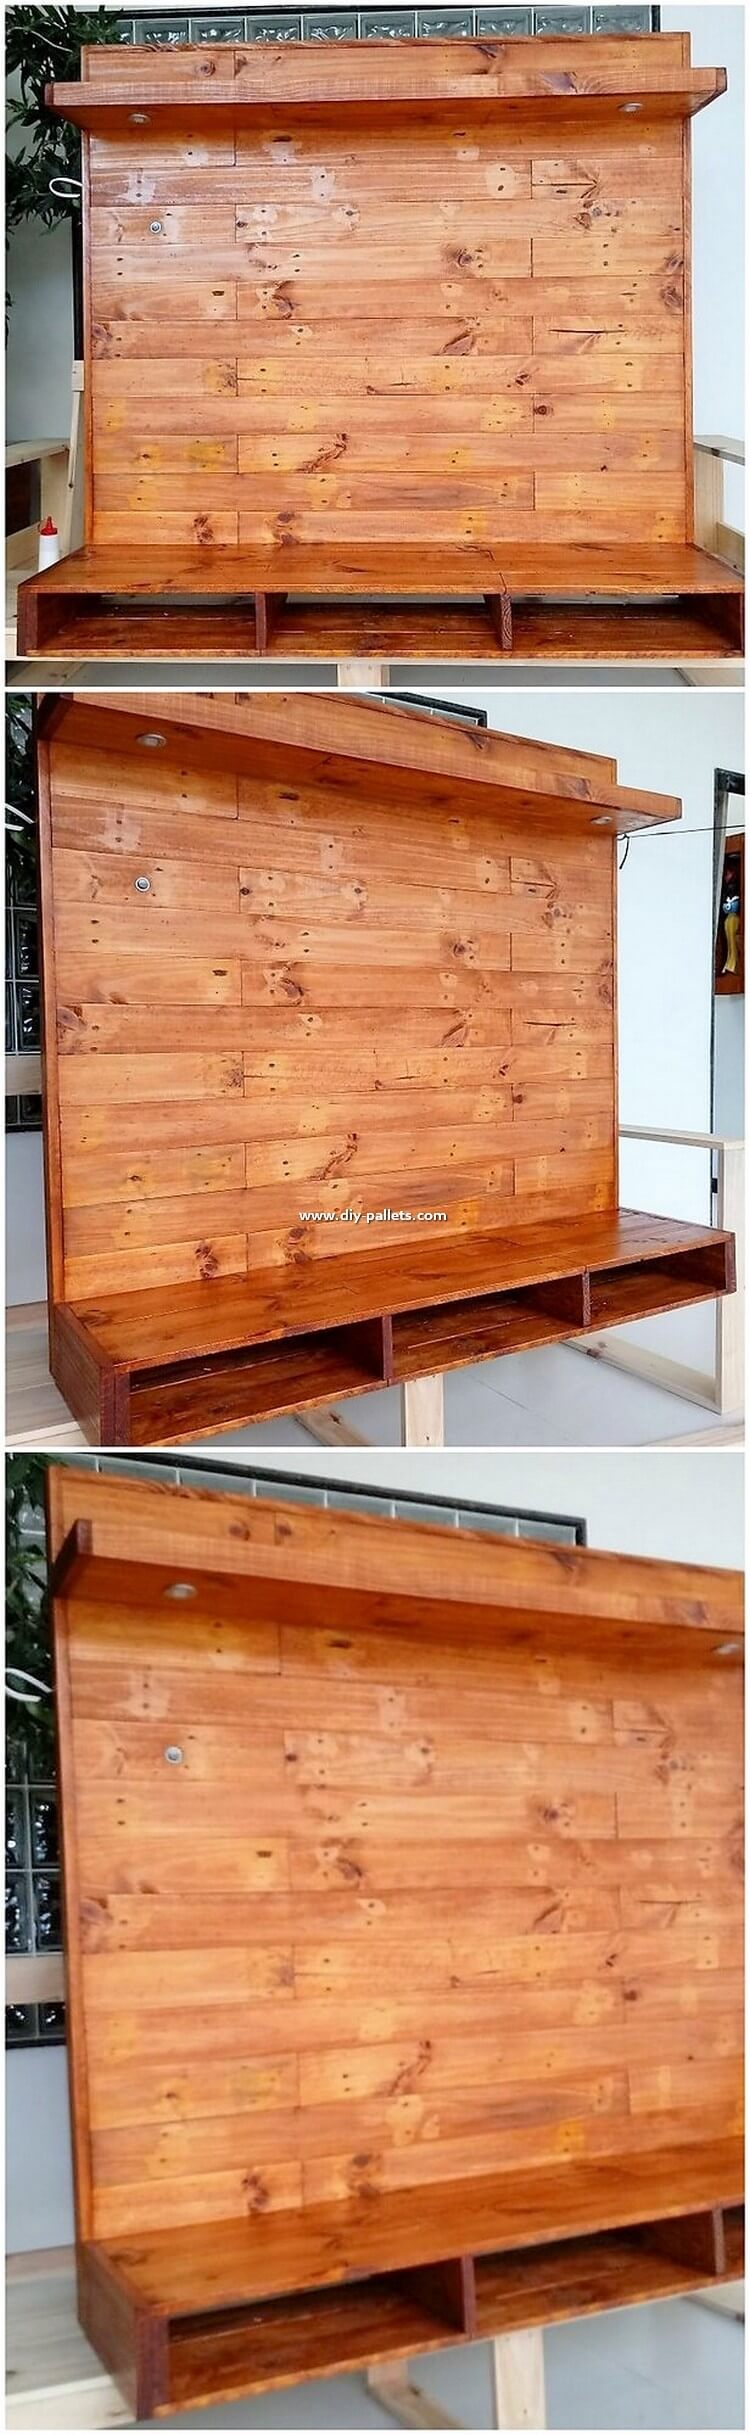 Wood Pallet Wall LED Holder